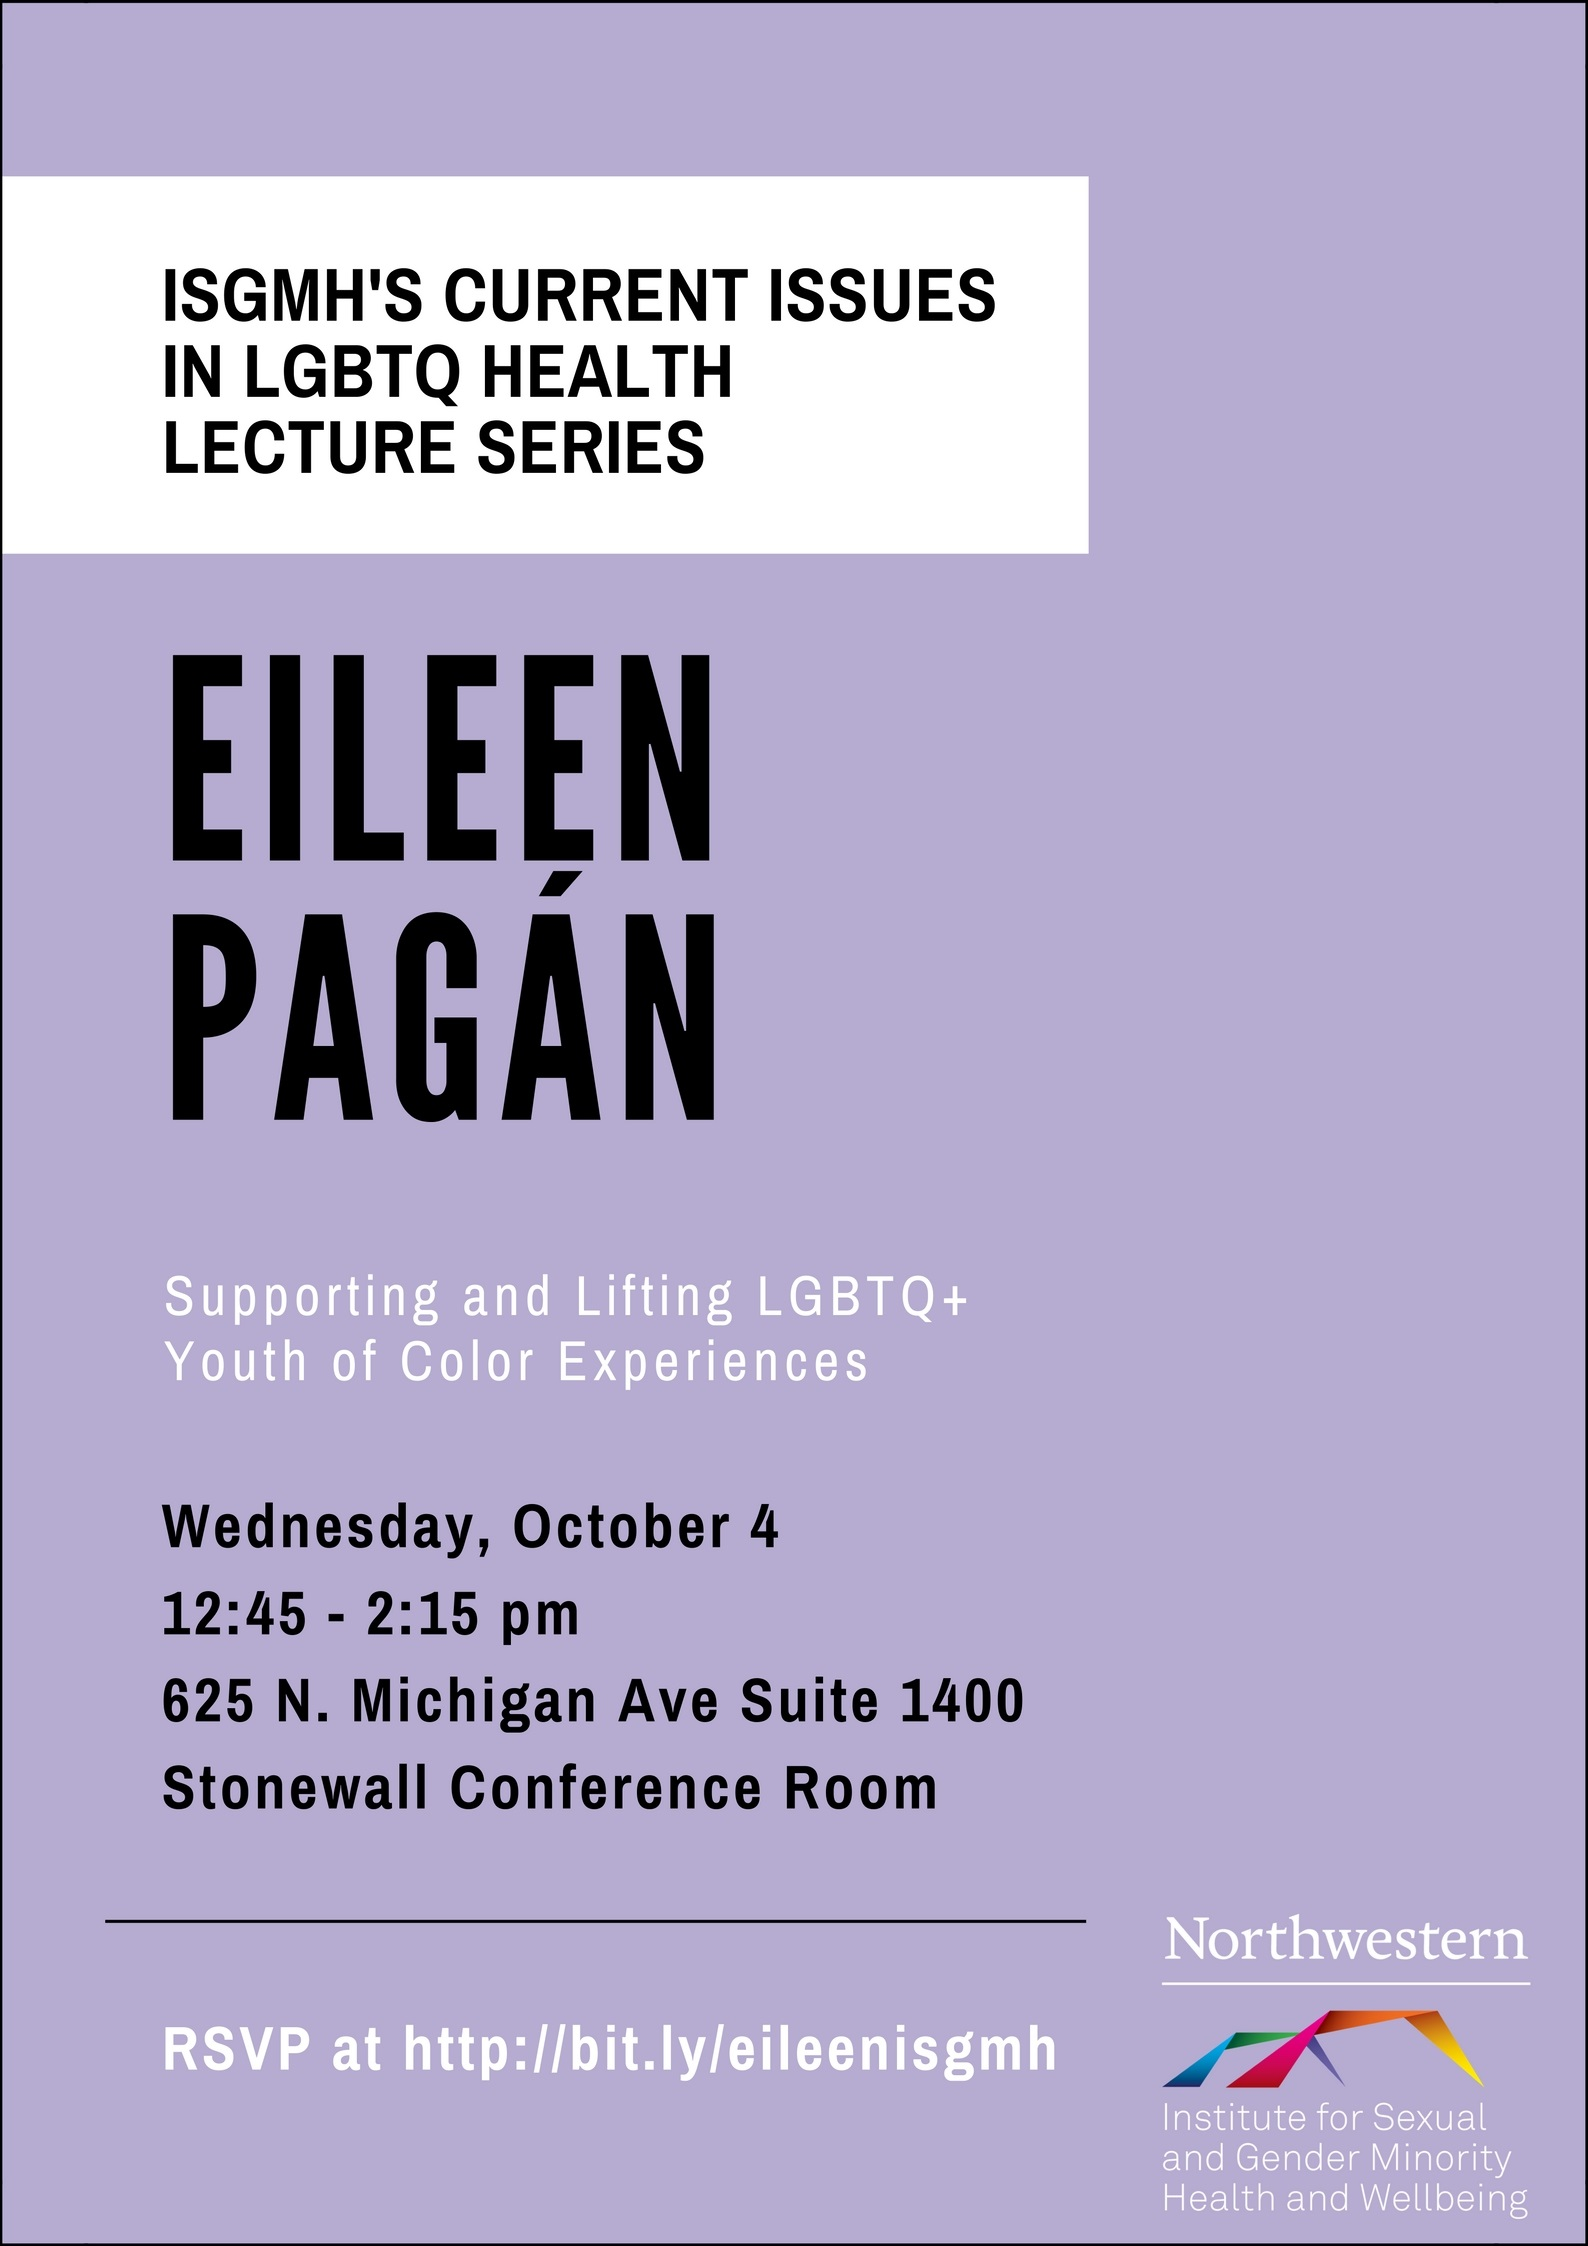 Poster for Eileen Pagan Current Issues talk